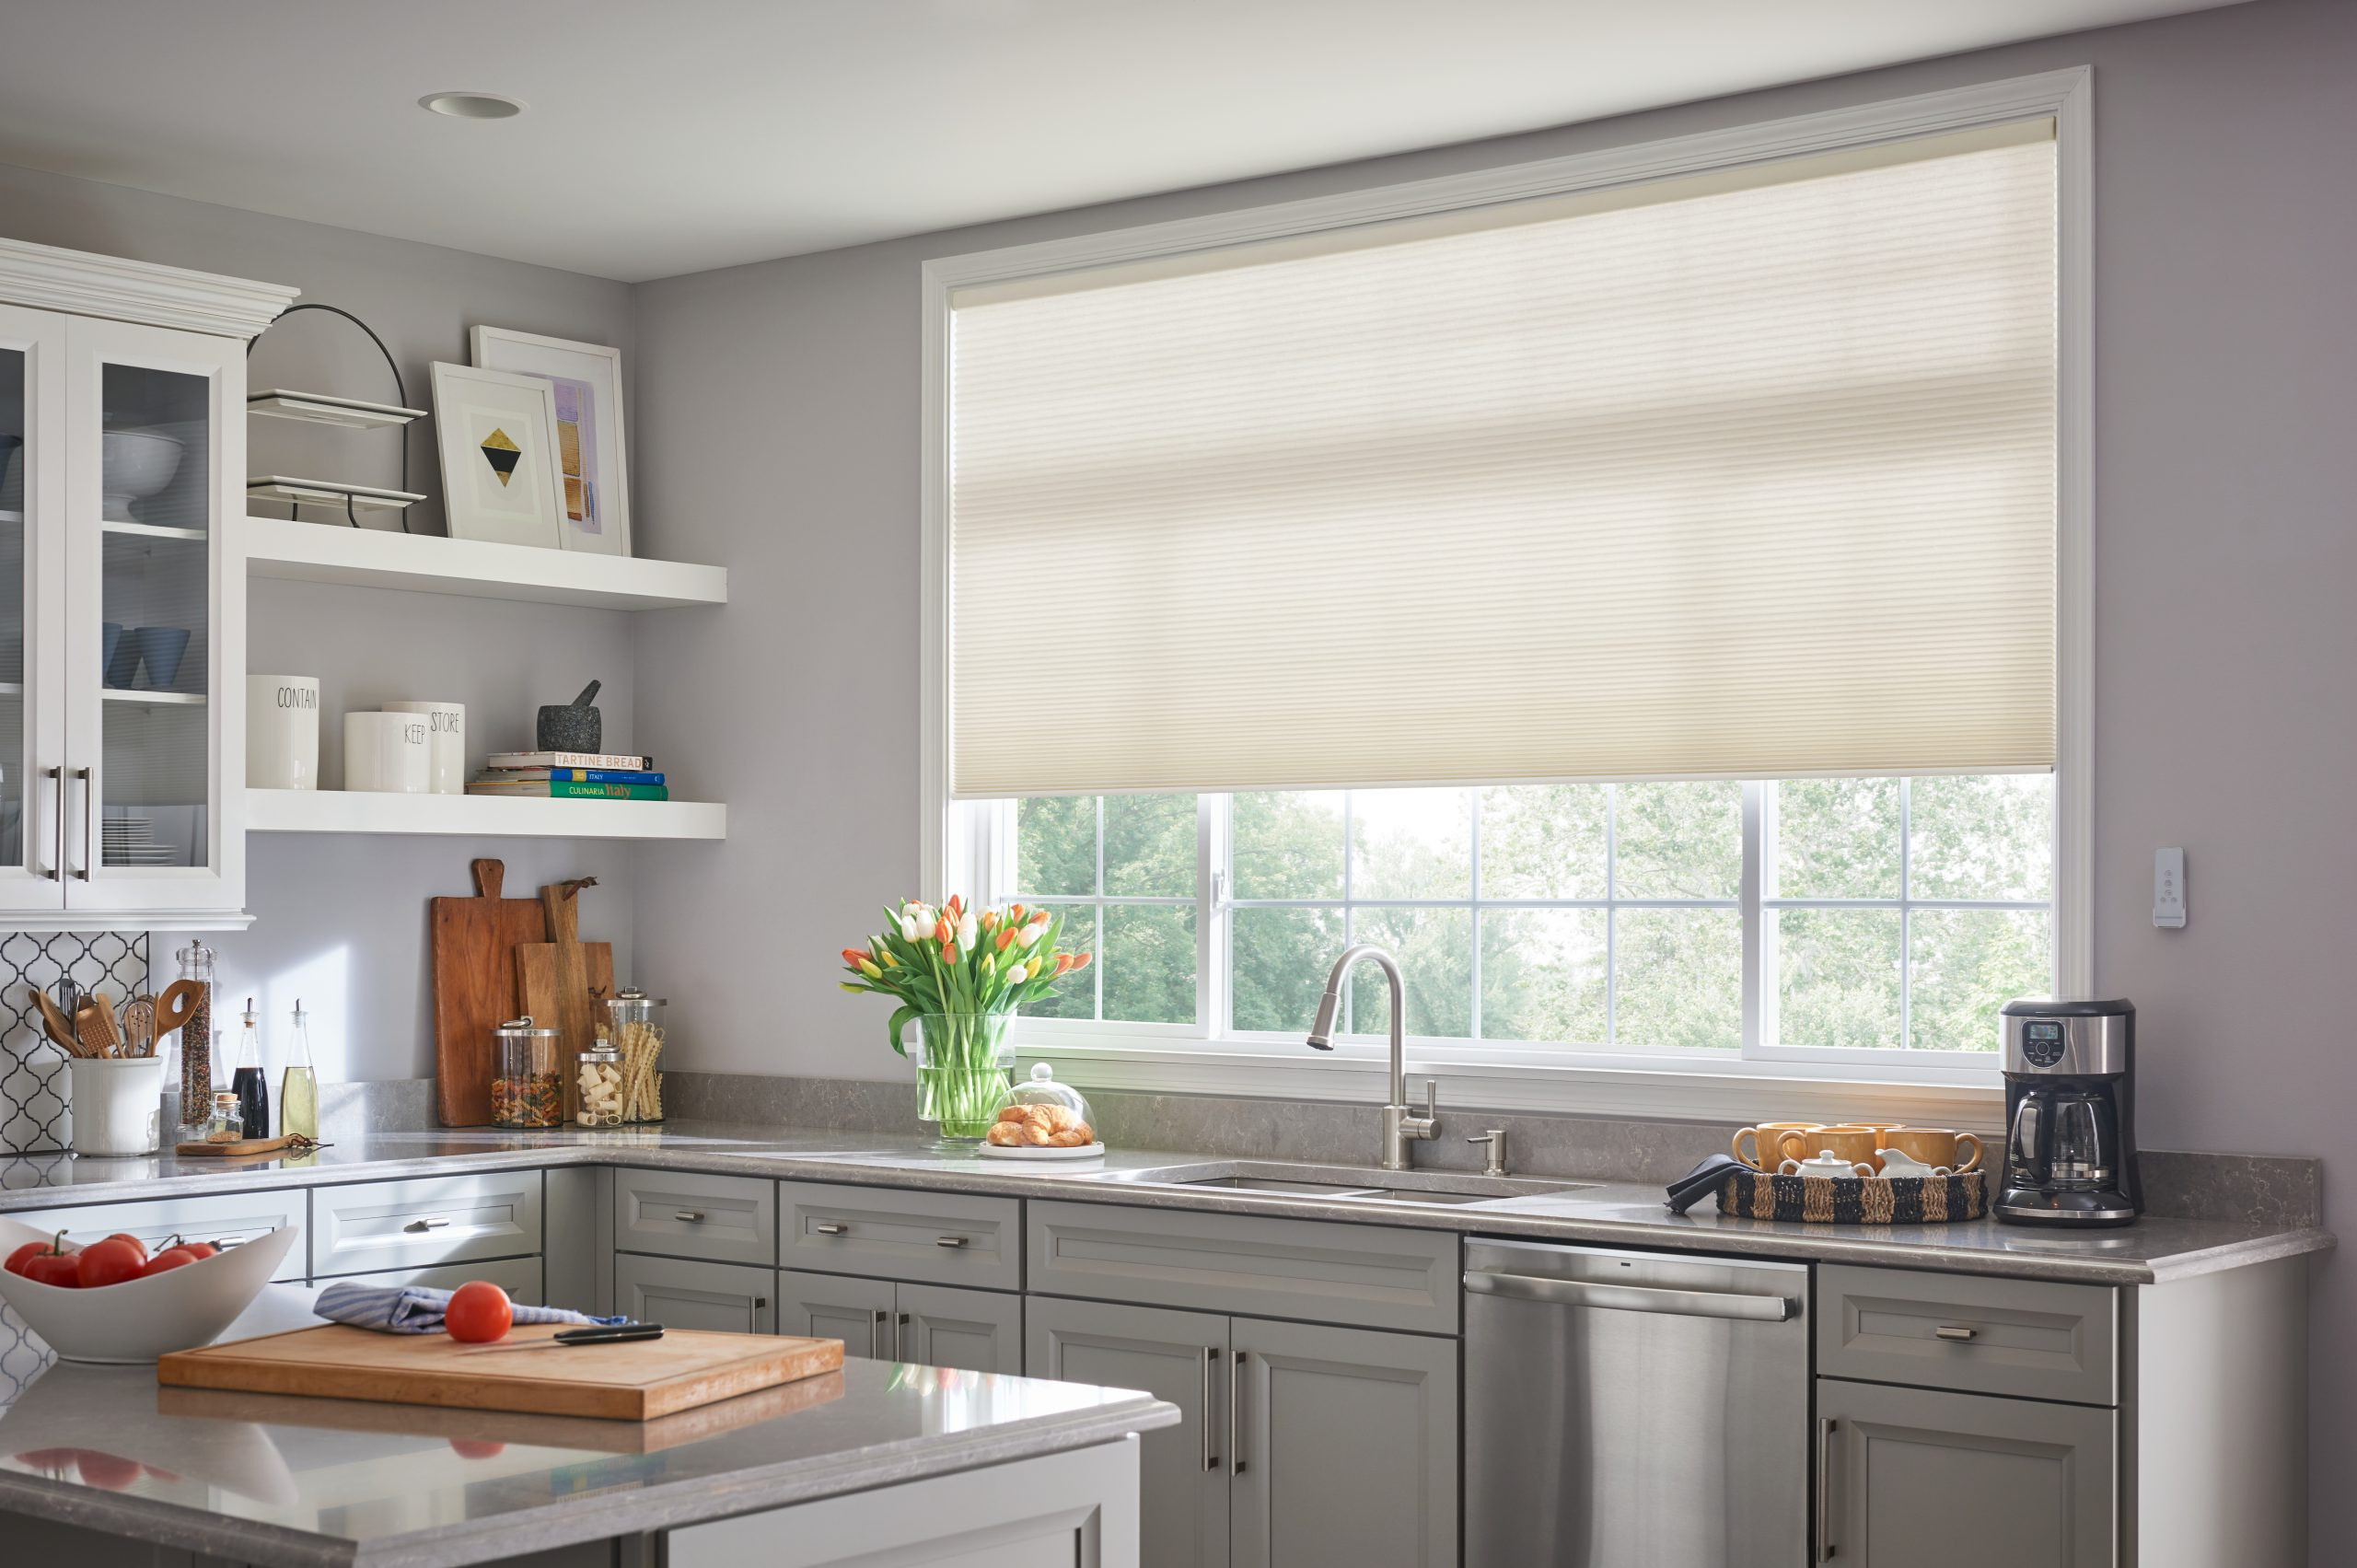 M&M_S15E13_Glen Peloso & Karen Pemberton_Budget Blinds Window Coverings